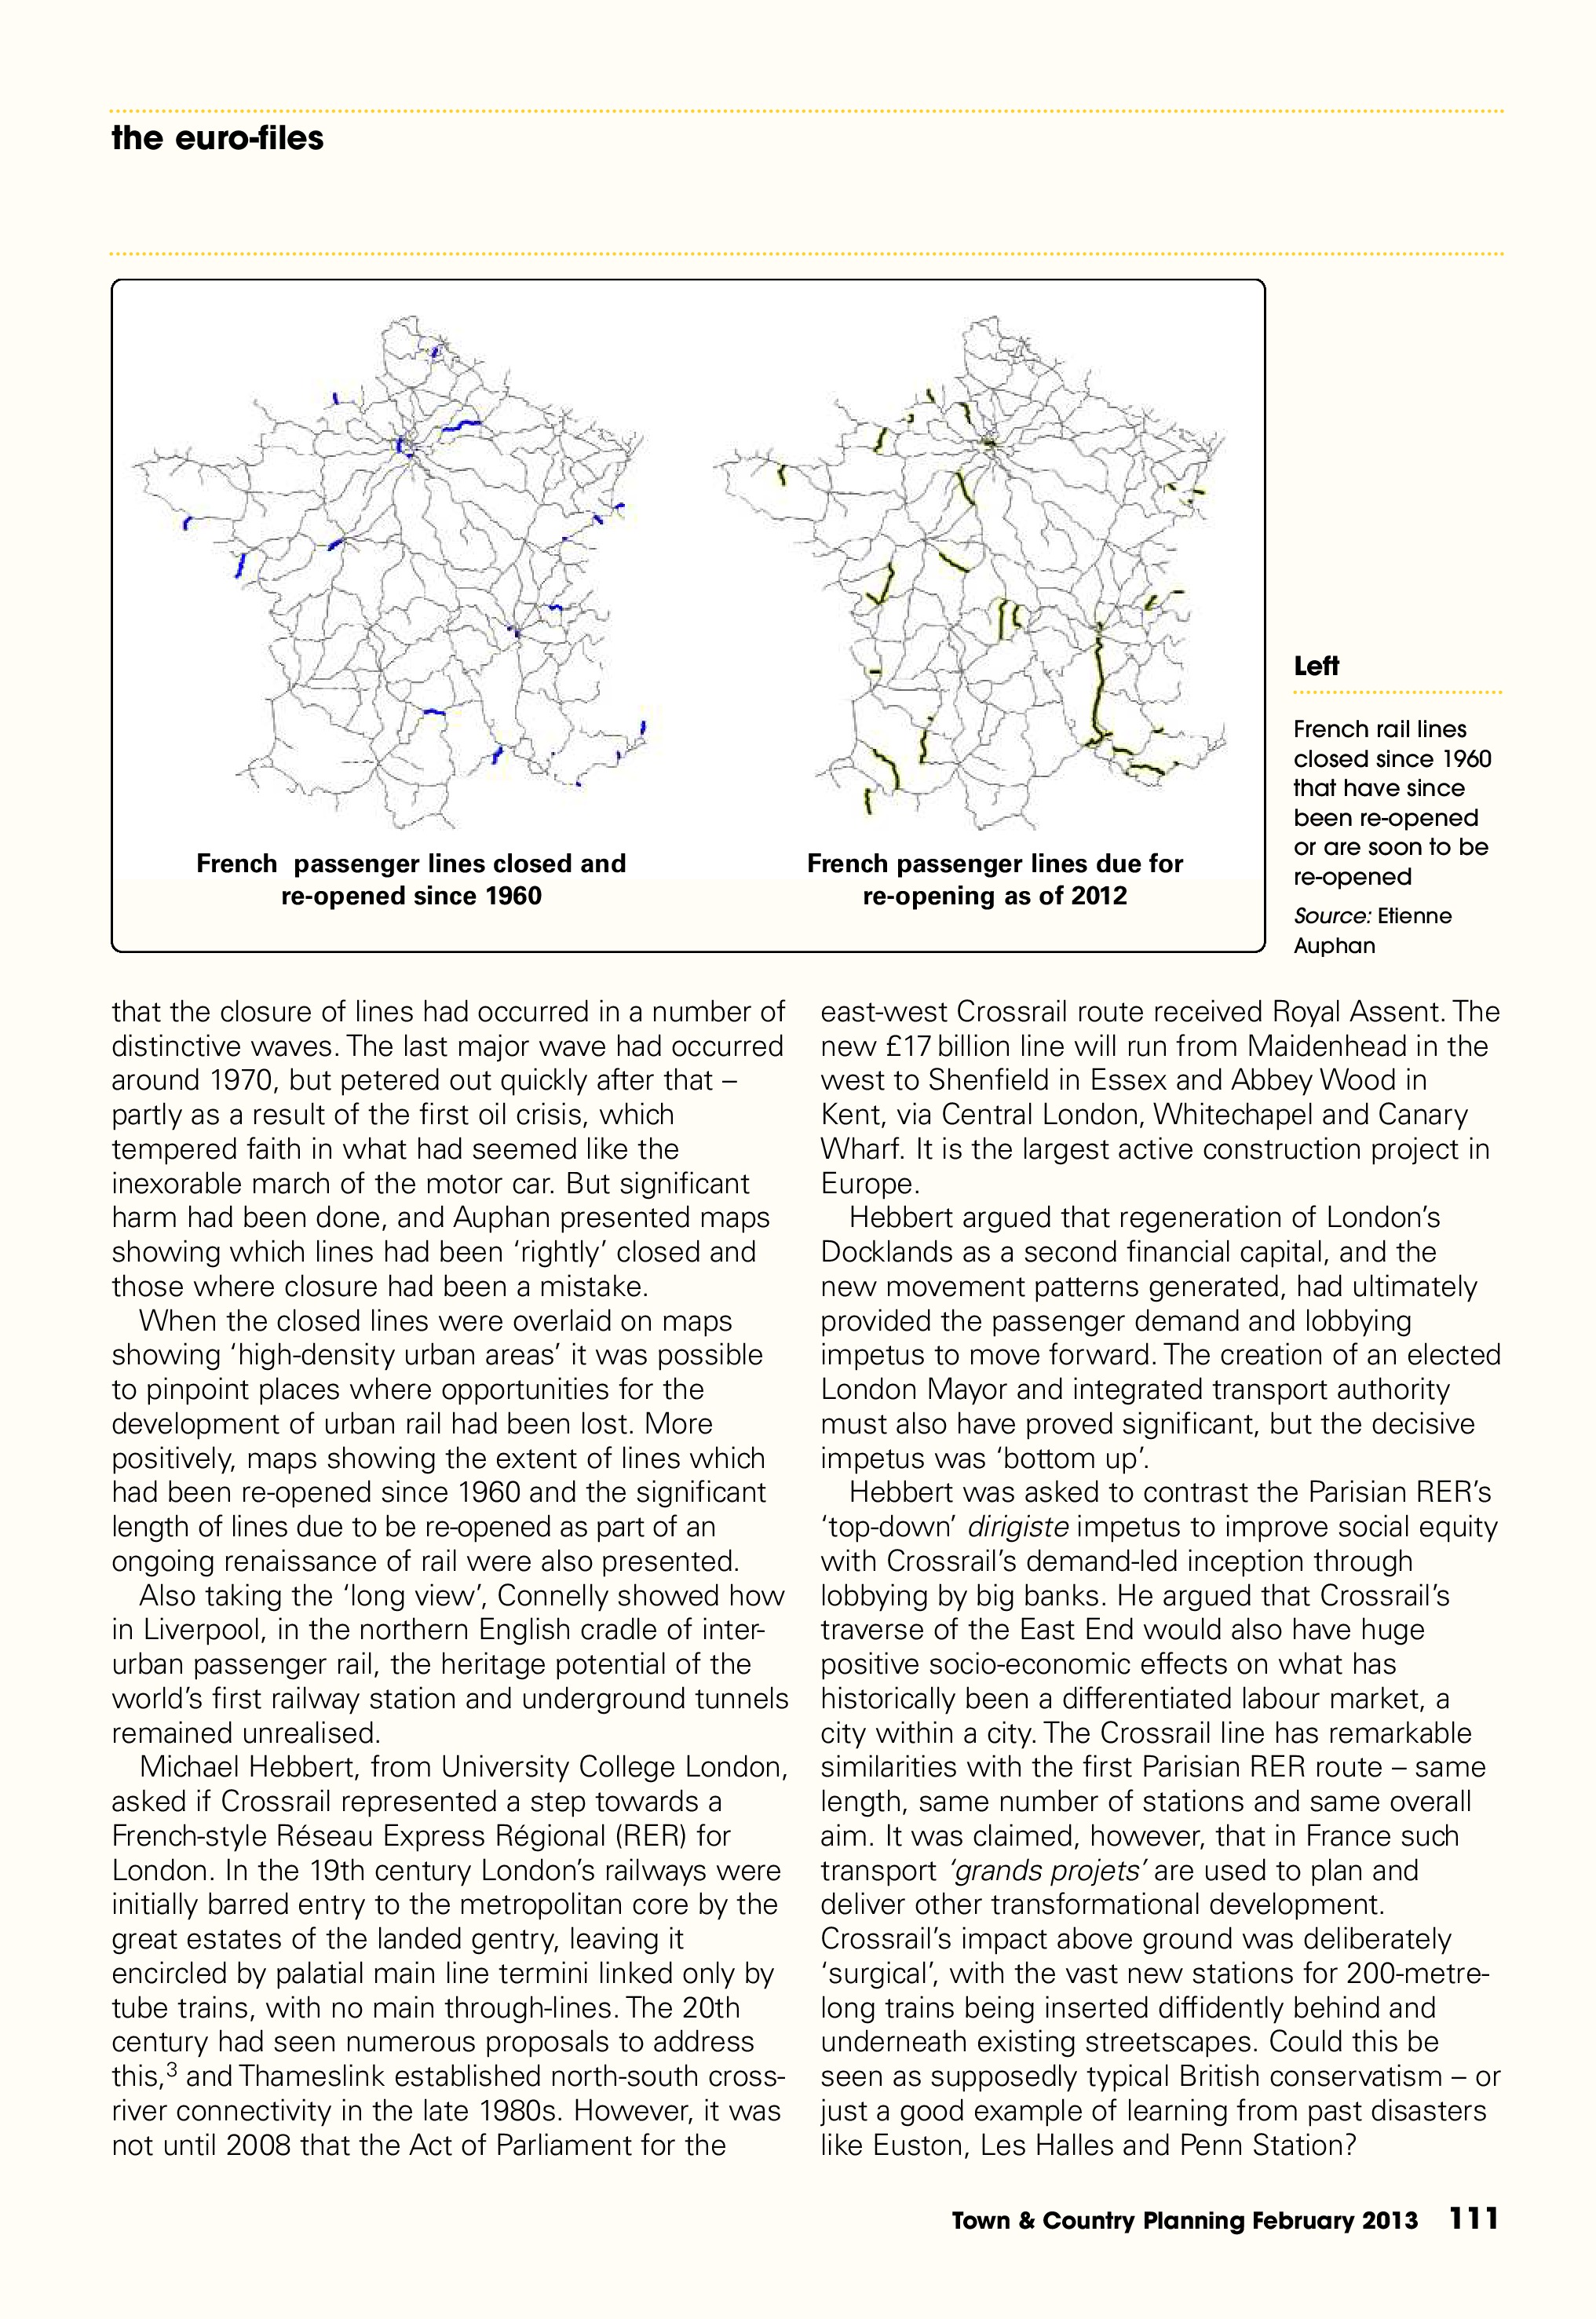 Town & Country Planning Association Journal, February 2013: 'Pulling the Right Levers' - 2nd Liverpool-Paris Rail Group Conference, p2/6